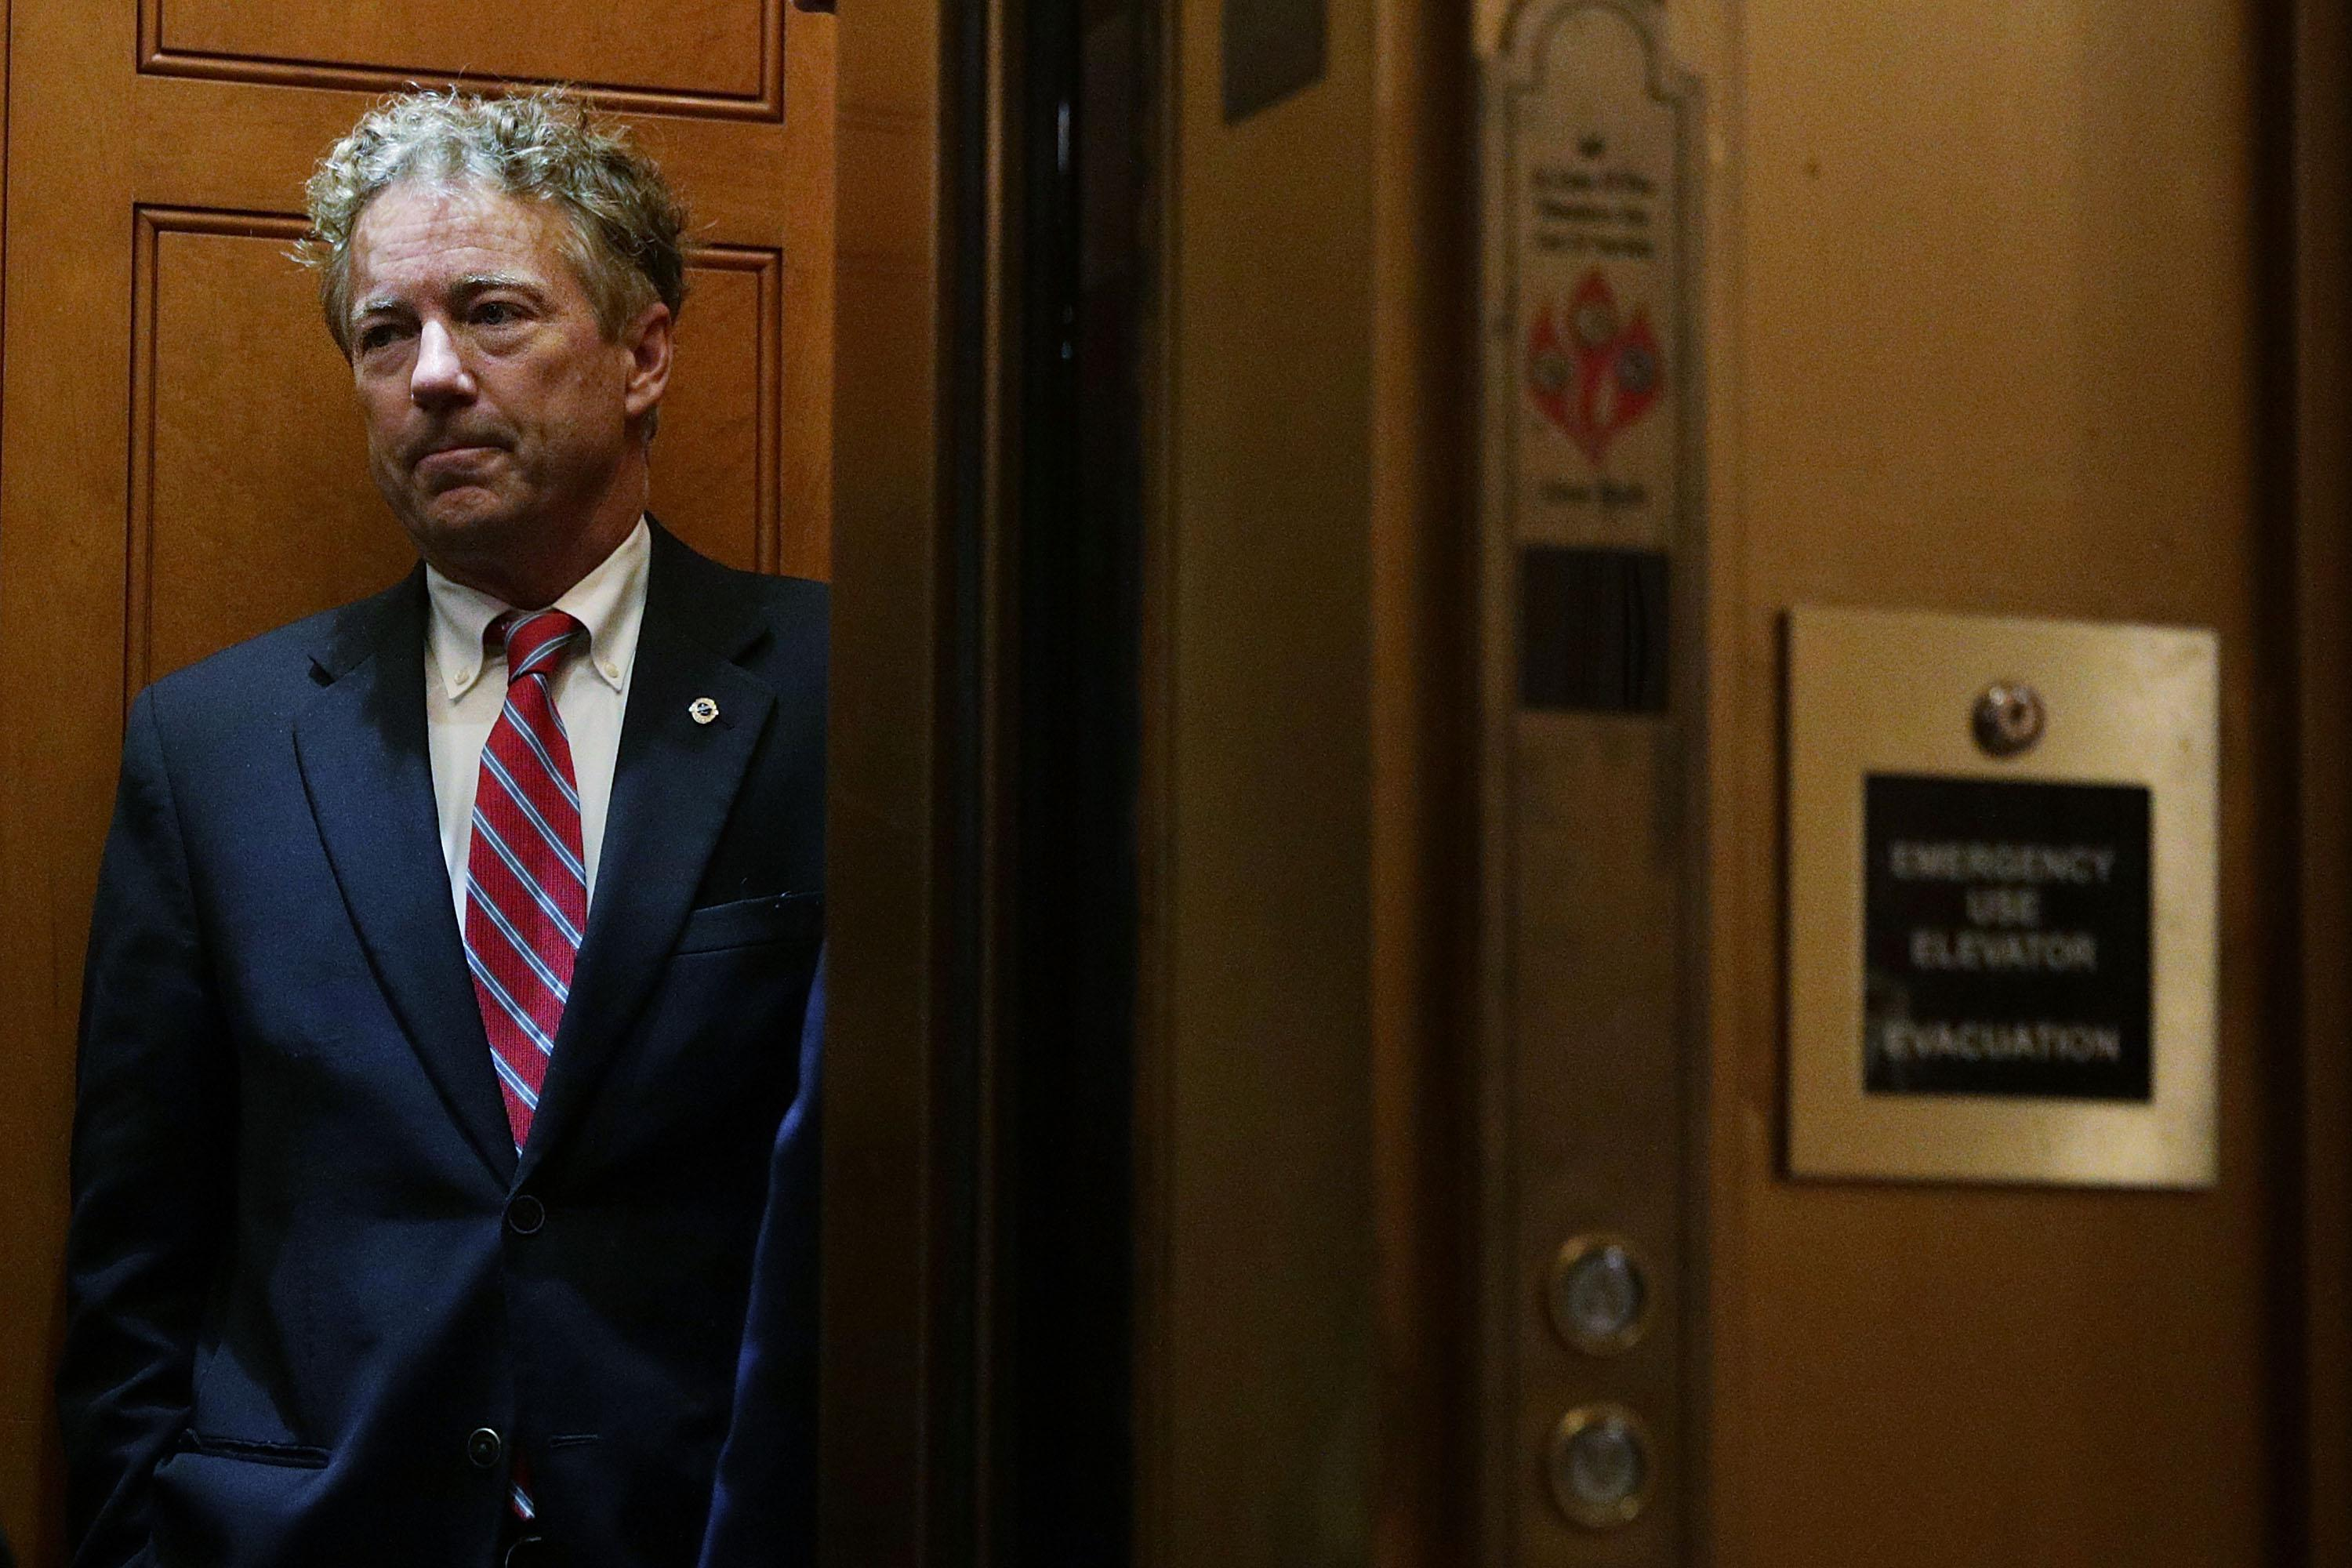 Sen. Rand Paul in an elevator at the U.S. Capitol.